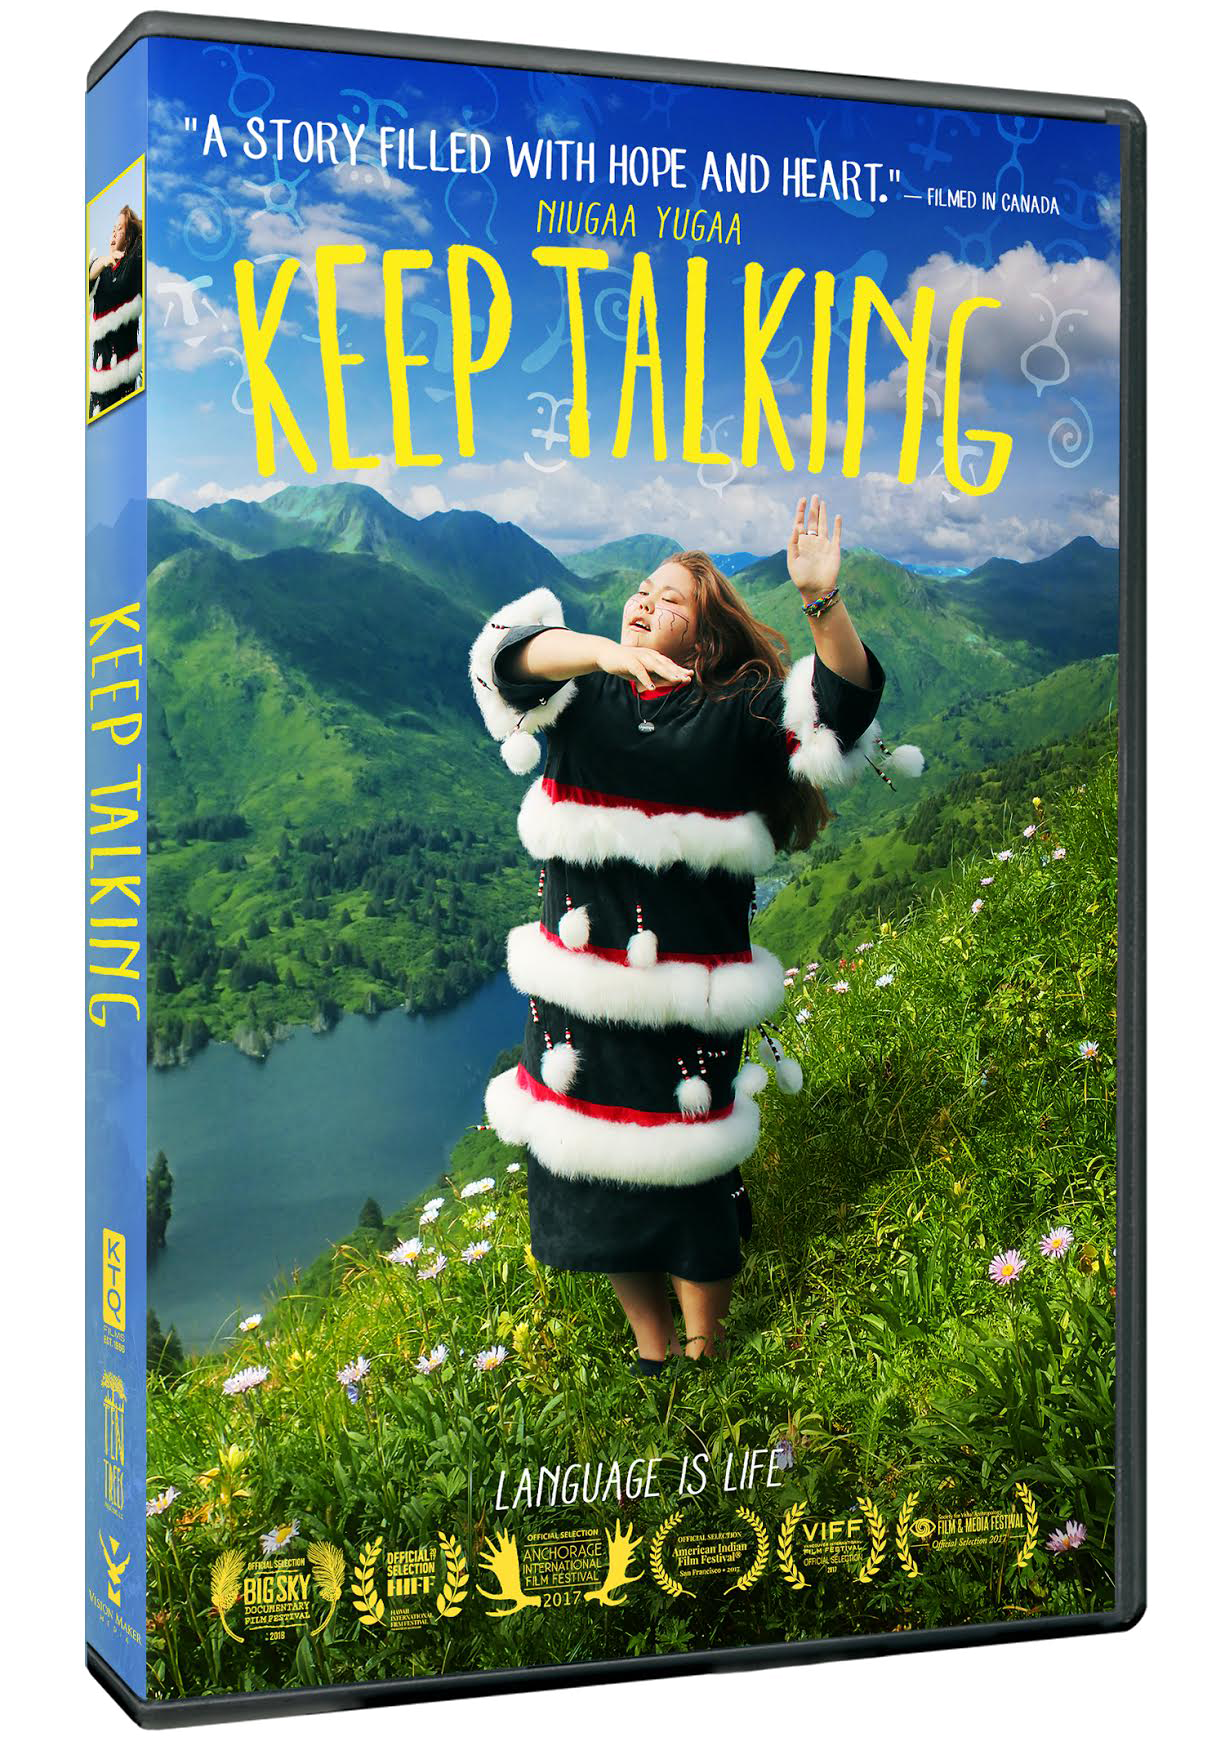 KEEP TALKING on DVD! - For individuals: $24.95For institutions: $295 purchase / $125 rentalDVD includes: - Two versions of the film (79 minute and 57 minute)- English and Spanish subtitles- 18 never-before-seen extra scenes, including A New Word for 'Tweet', Dancing is for Men, and The Eldest Elder